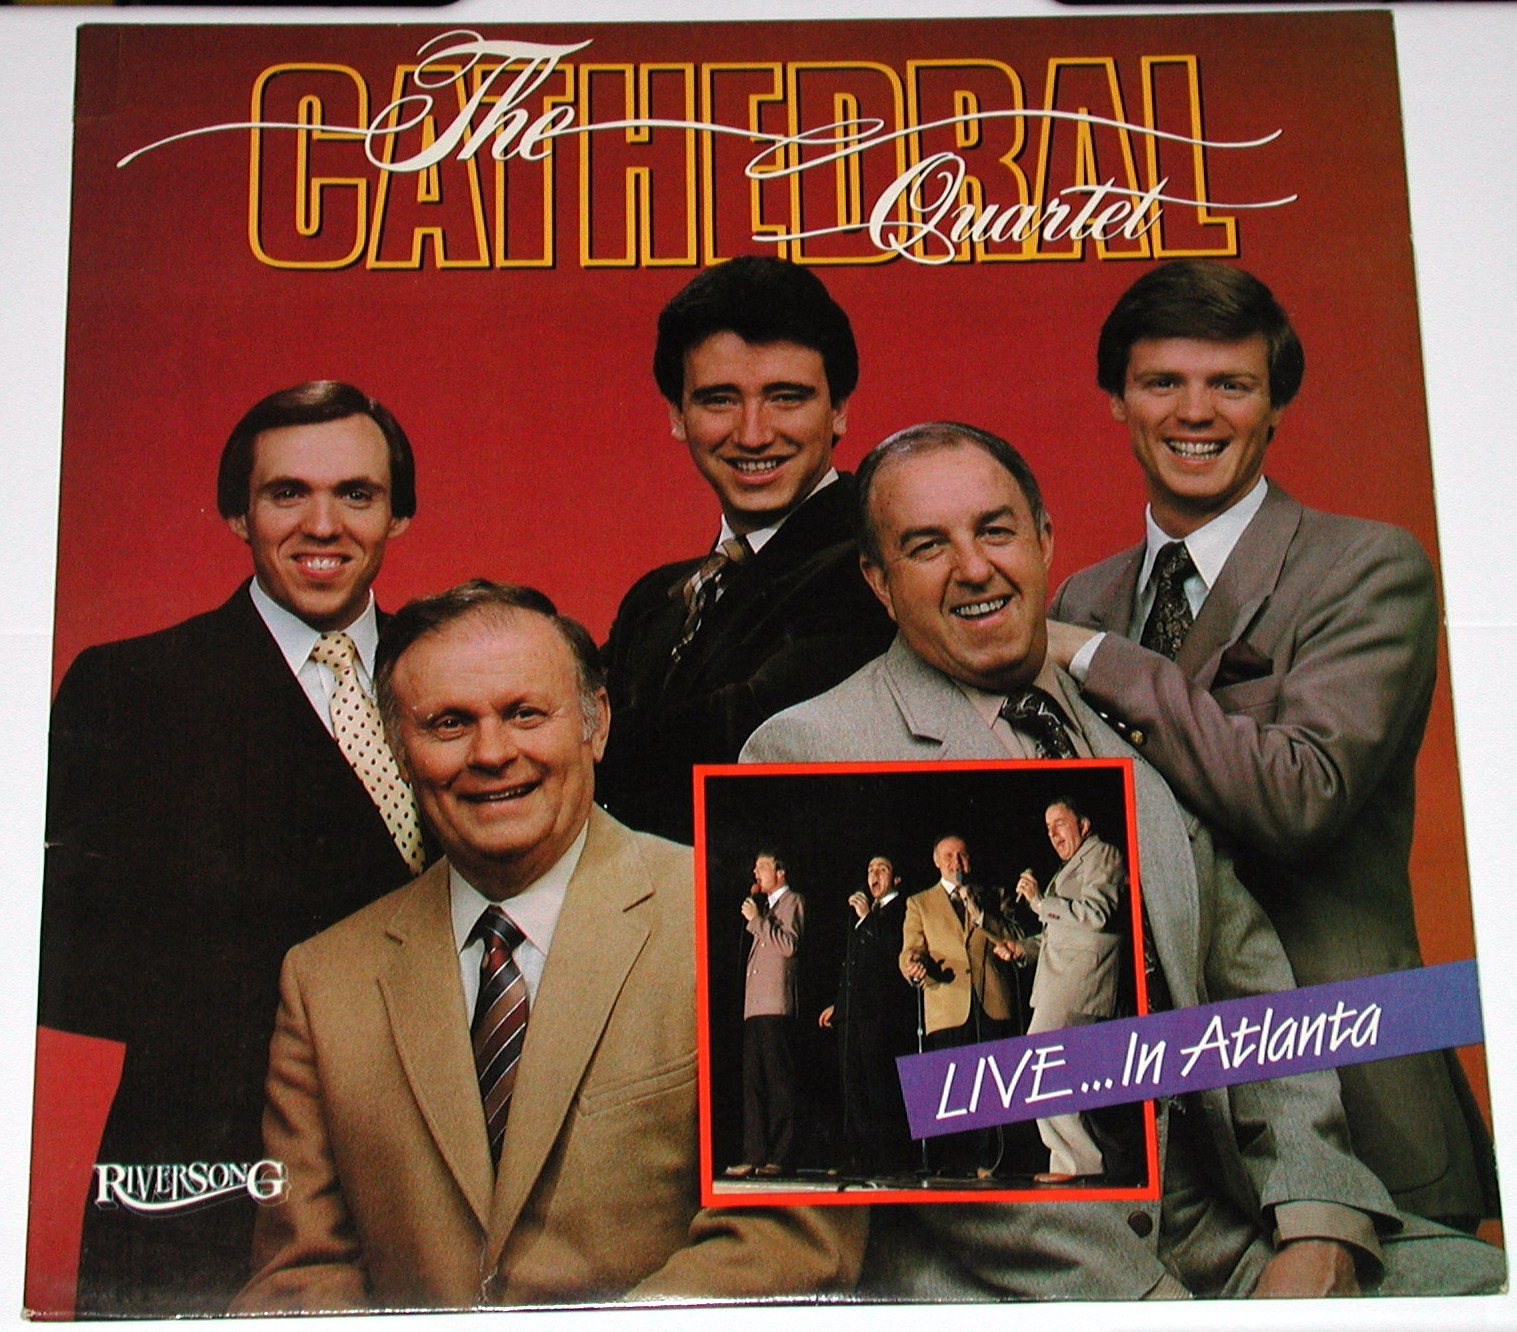 Cathedrals Cathedral Quartet Southern Gospel Music